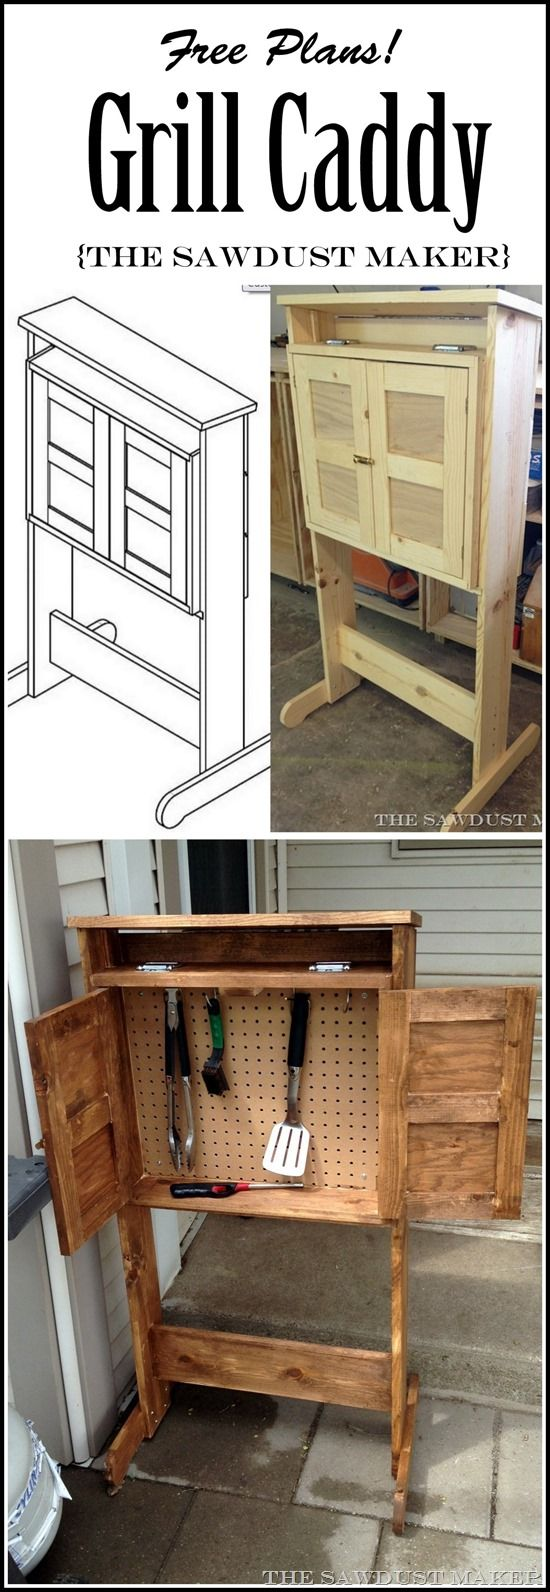 build this diy grill caddy with free building plans the. Black Bedroom Furniture Sets. Home Design Ideas